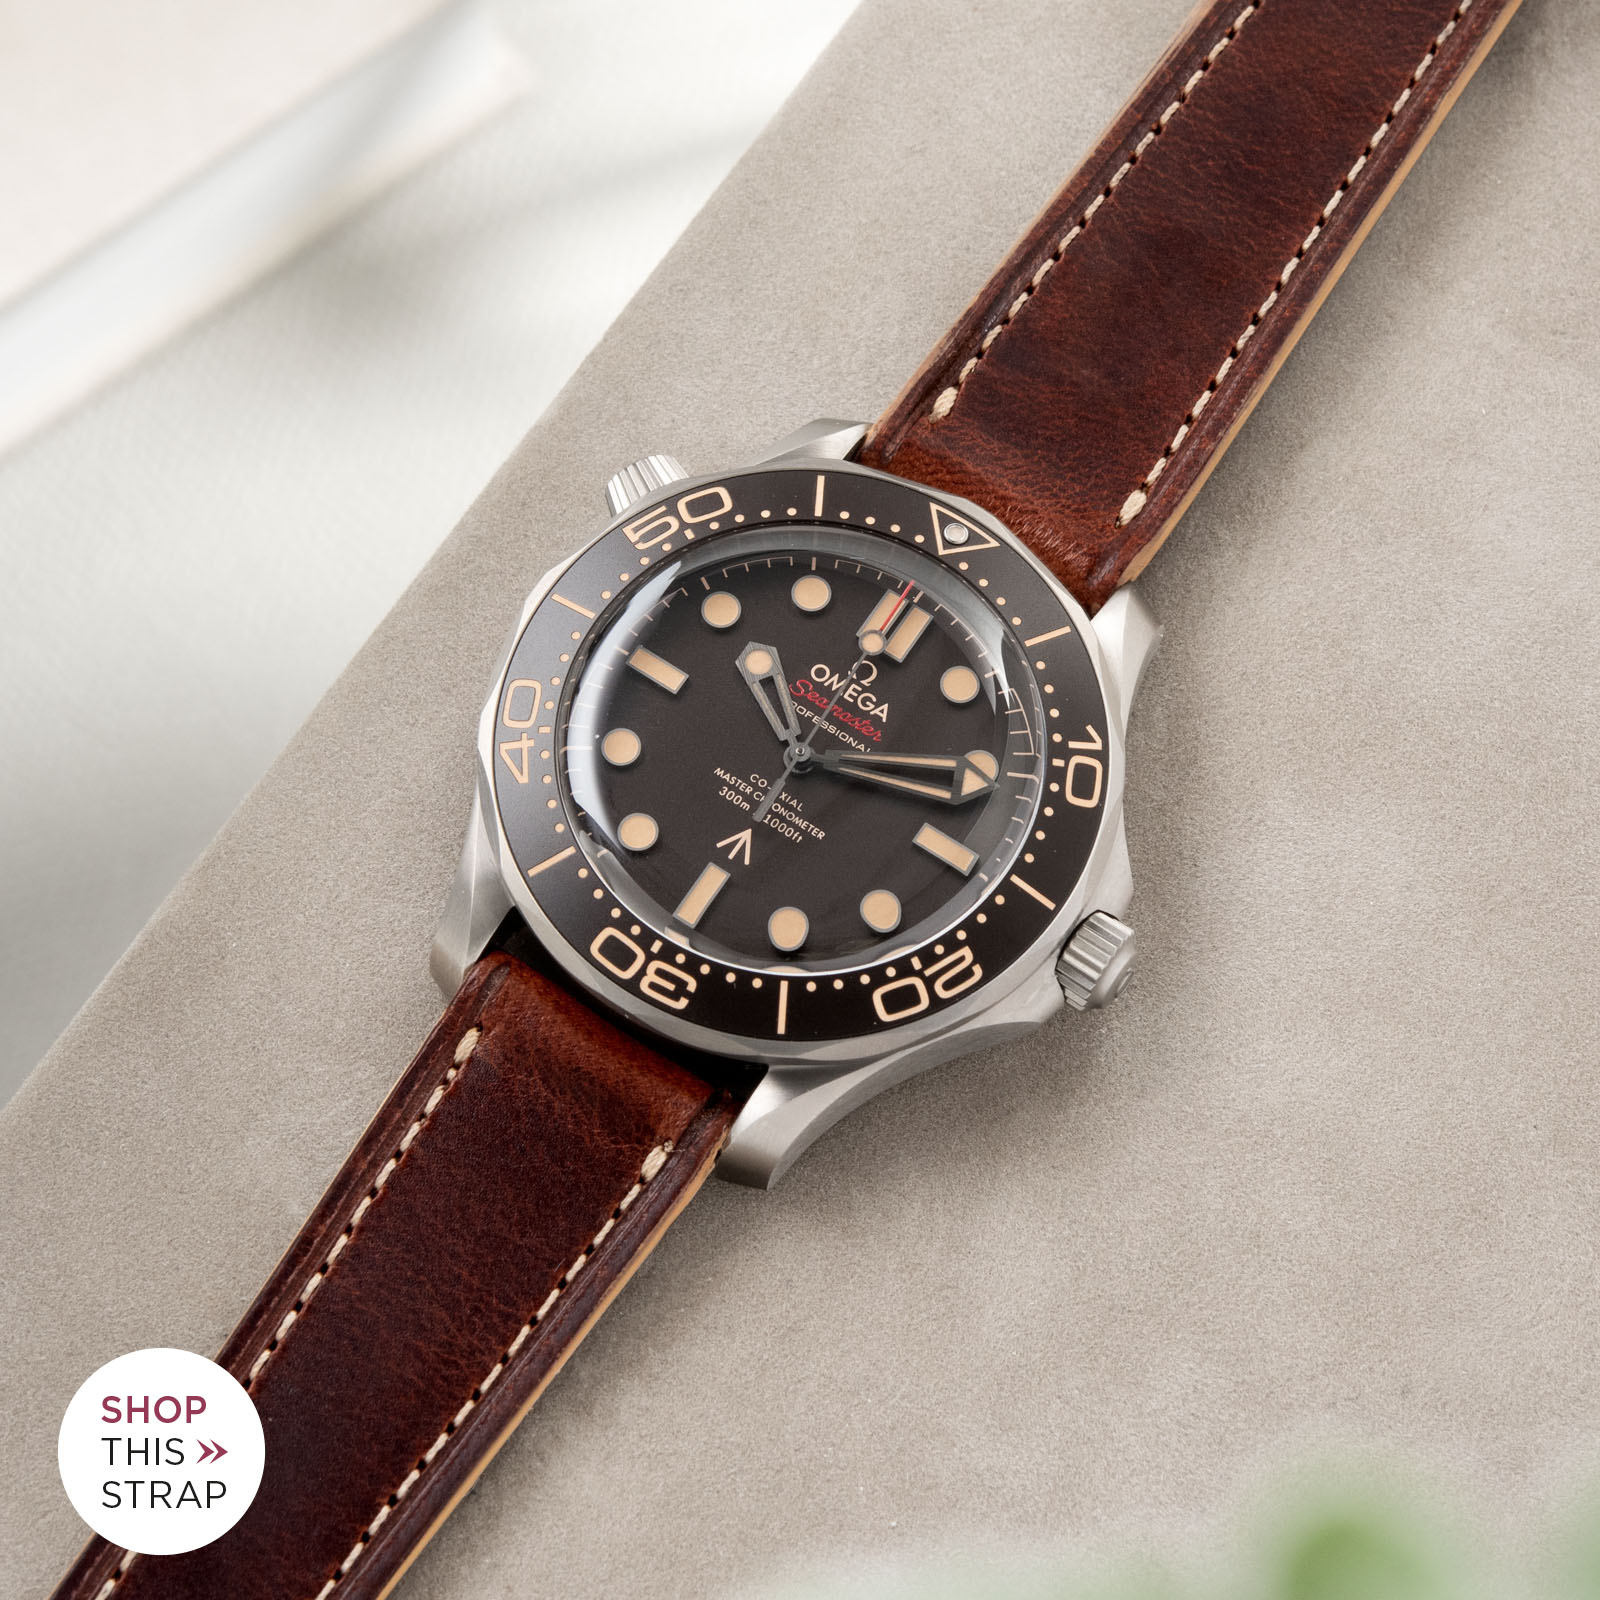 Bulang and Sons_Strapguide_Omega Seamaster_Siena Brown Retro Leather Watch Strap